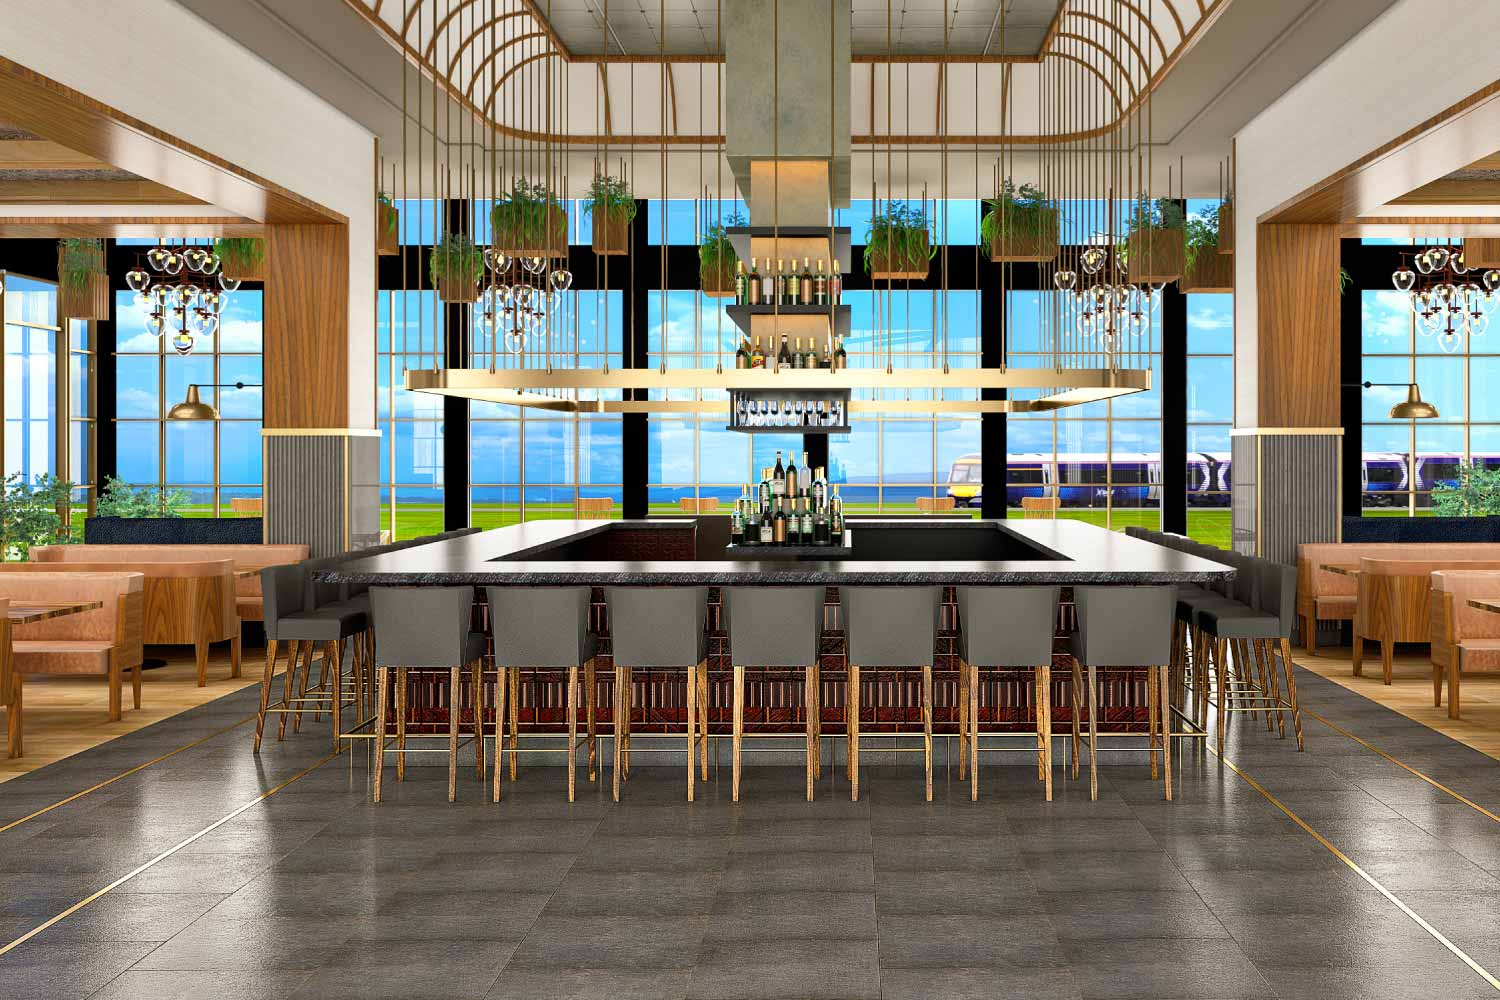 bar interior of floor to ceiling windows, glamorous hanging lights, center bar with seven bar stools on each side